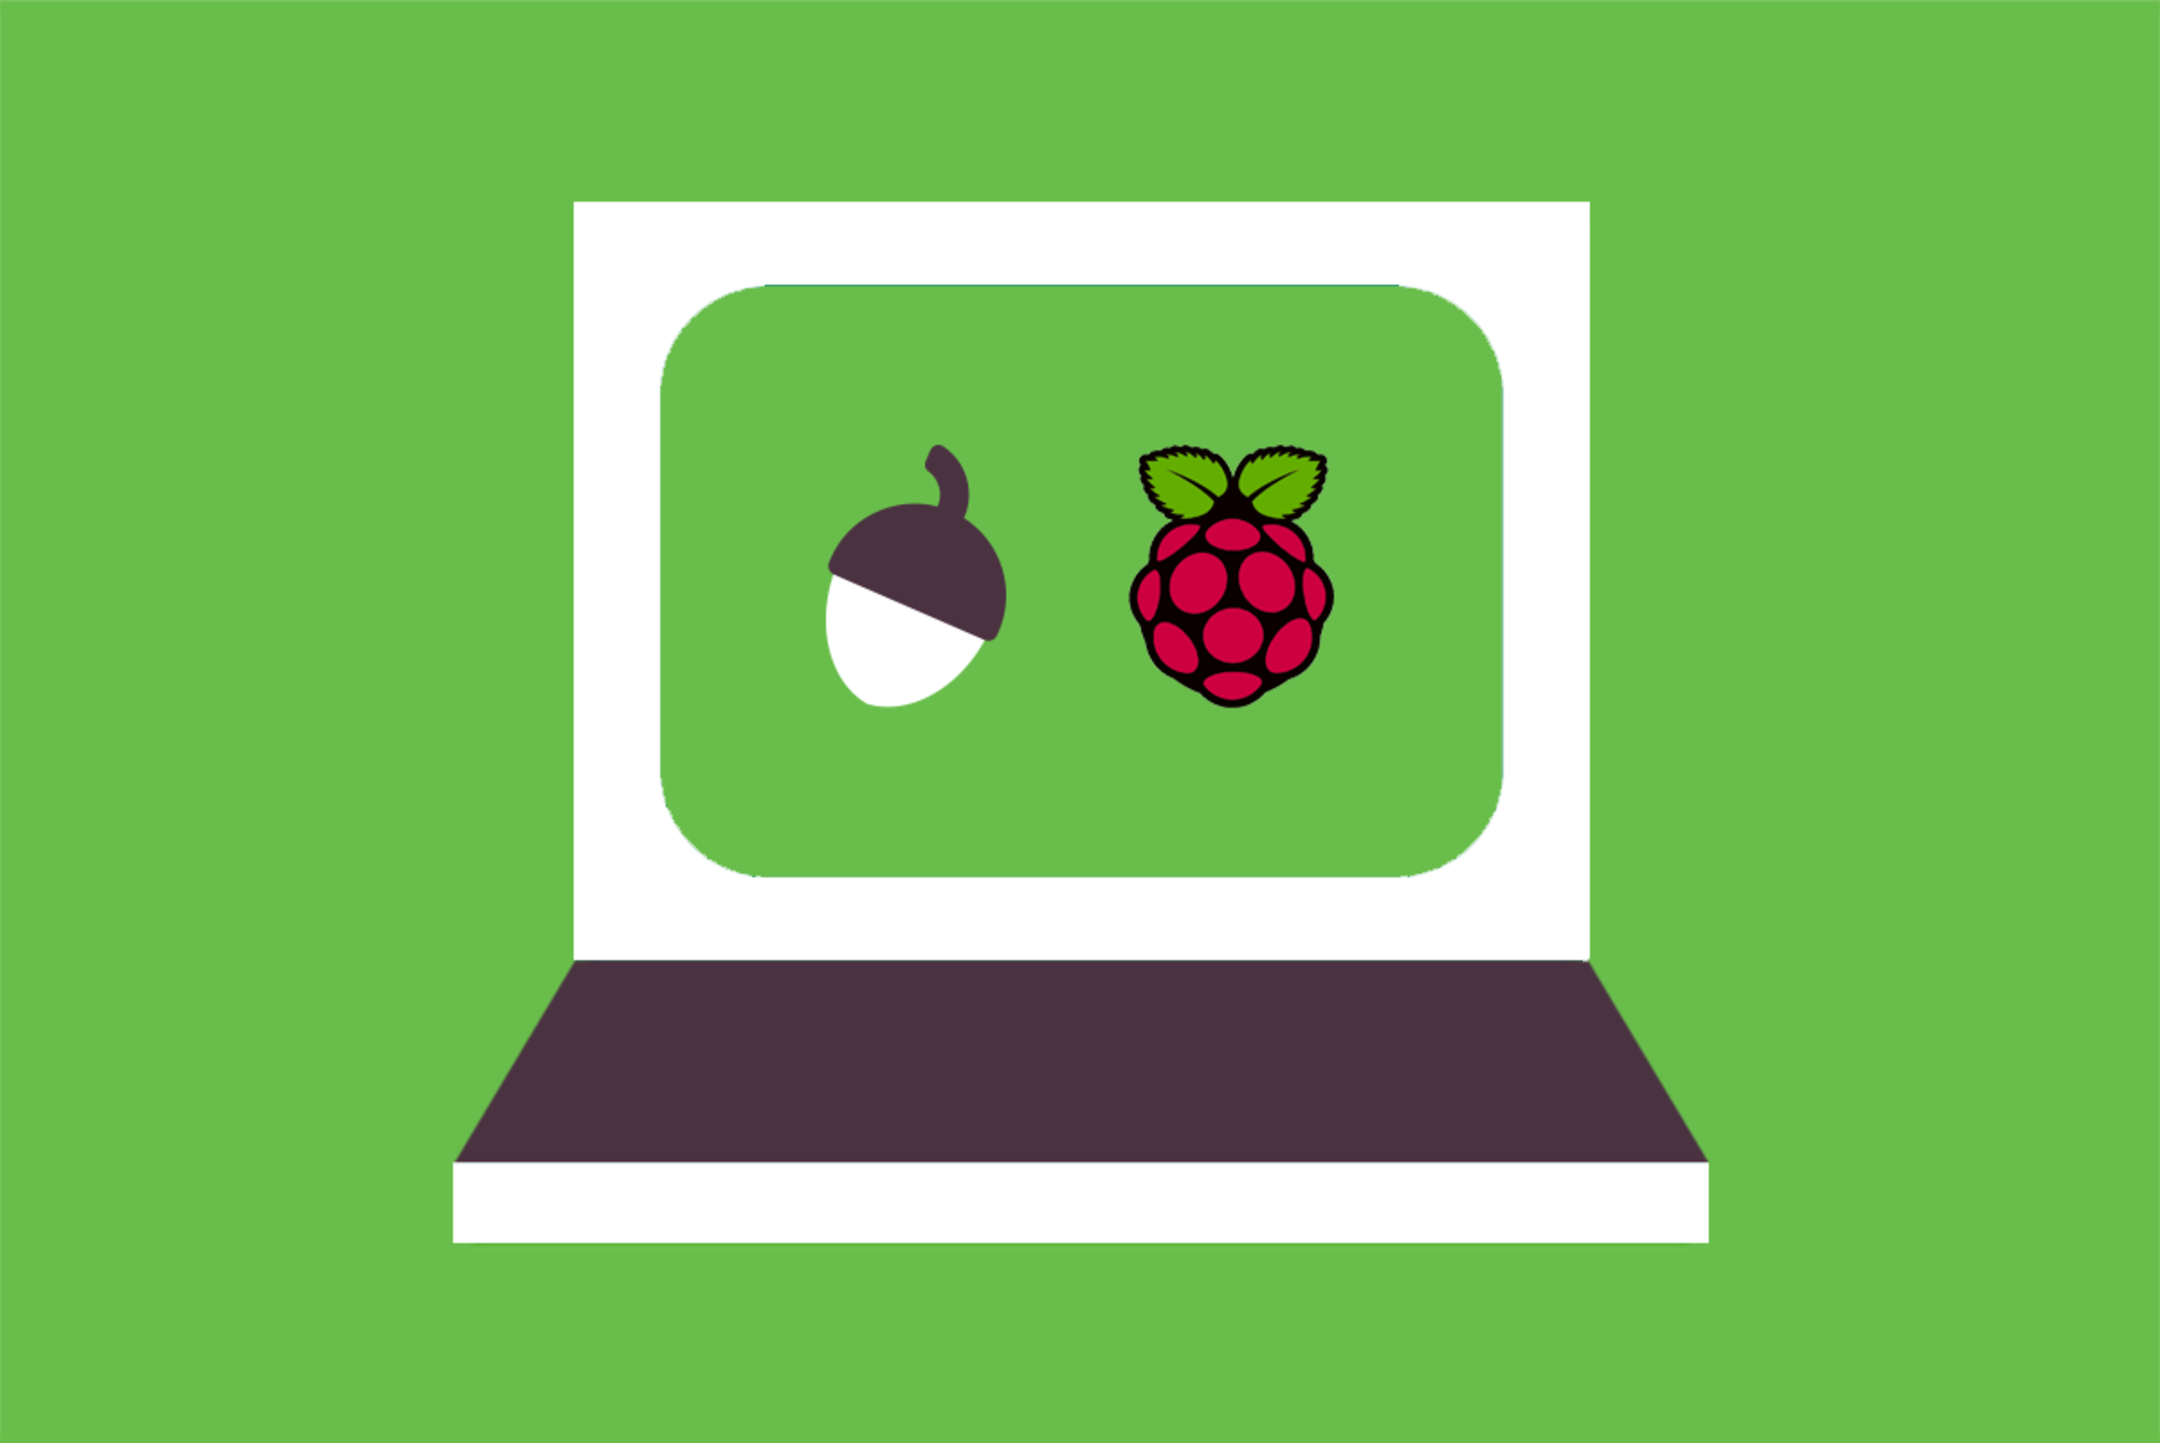 A laptop with Oak's acorn and Raspberry Pi logo on its screen.